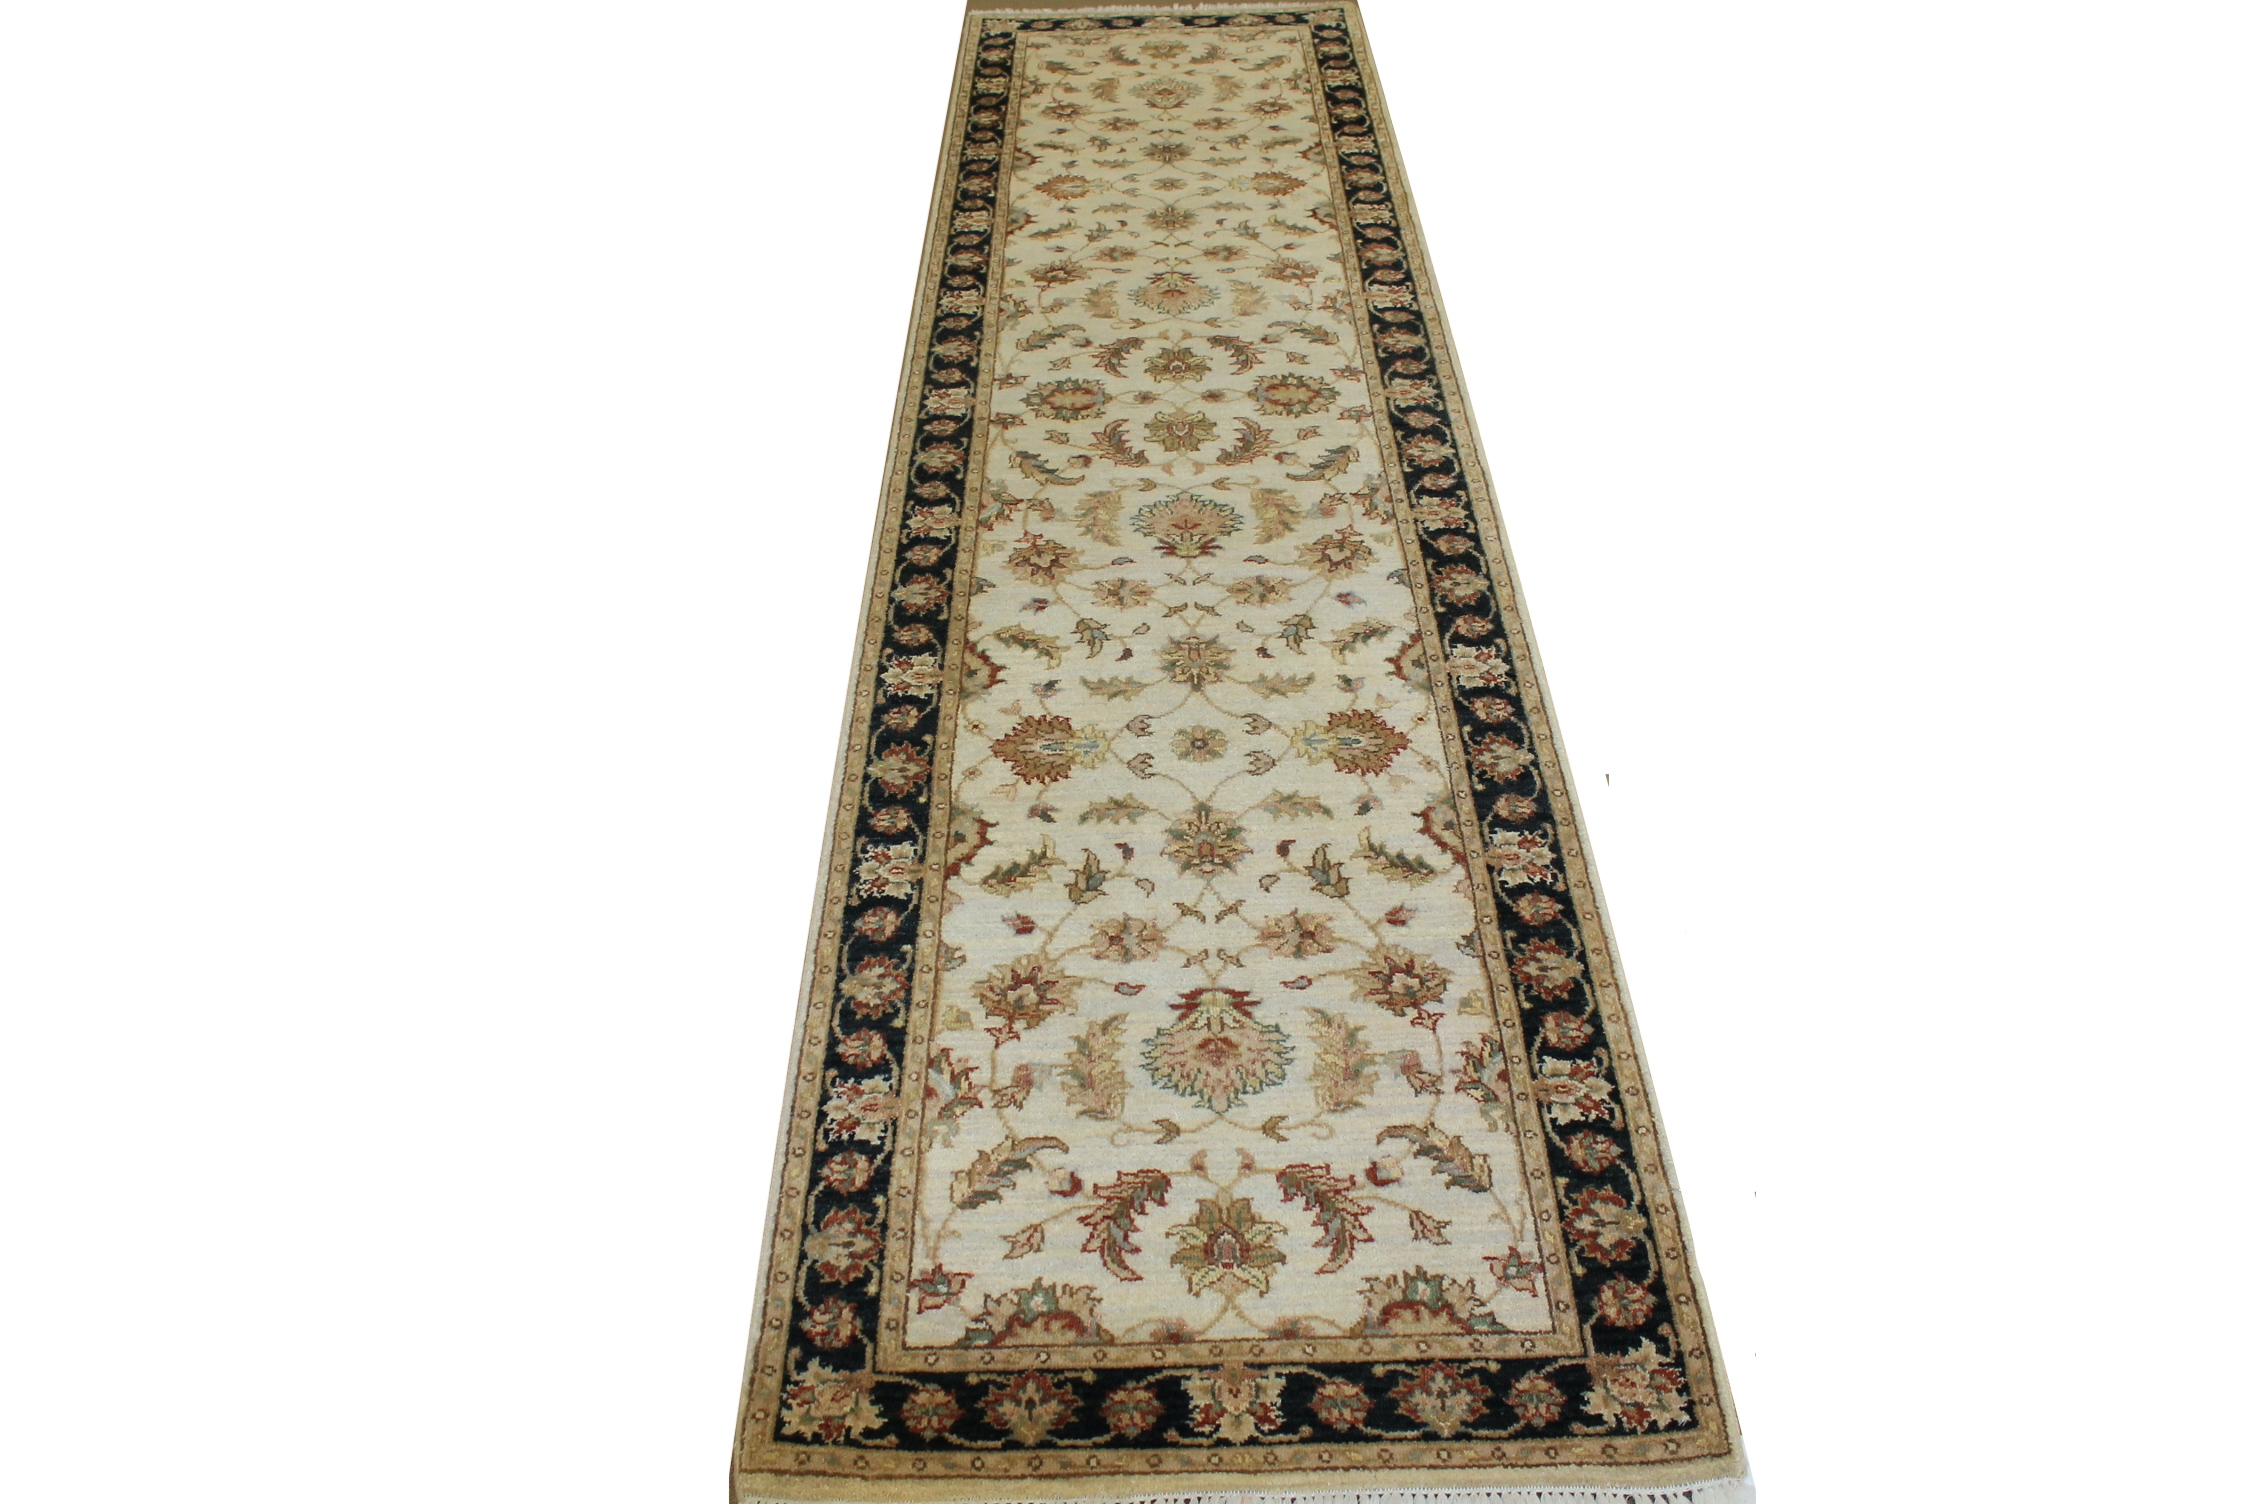 10 ft. Runner Traditional Hand Knotted Wool Area Rug - MR16655